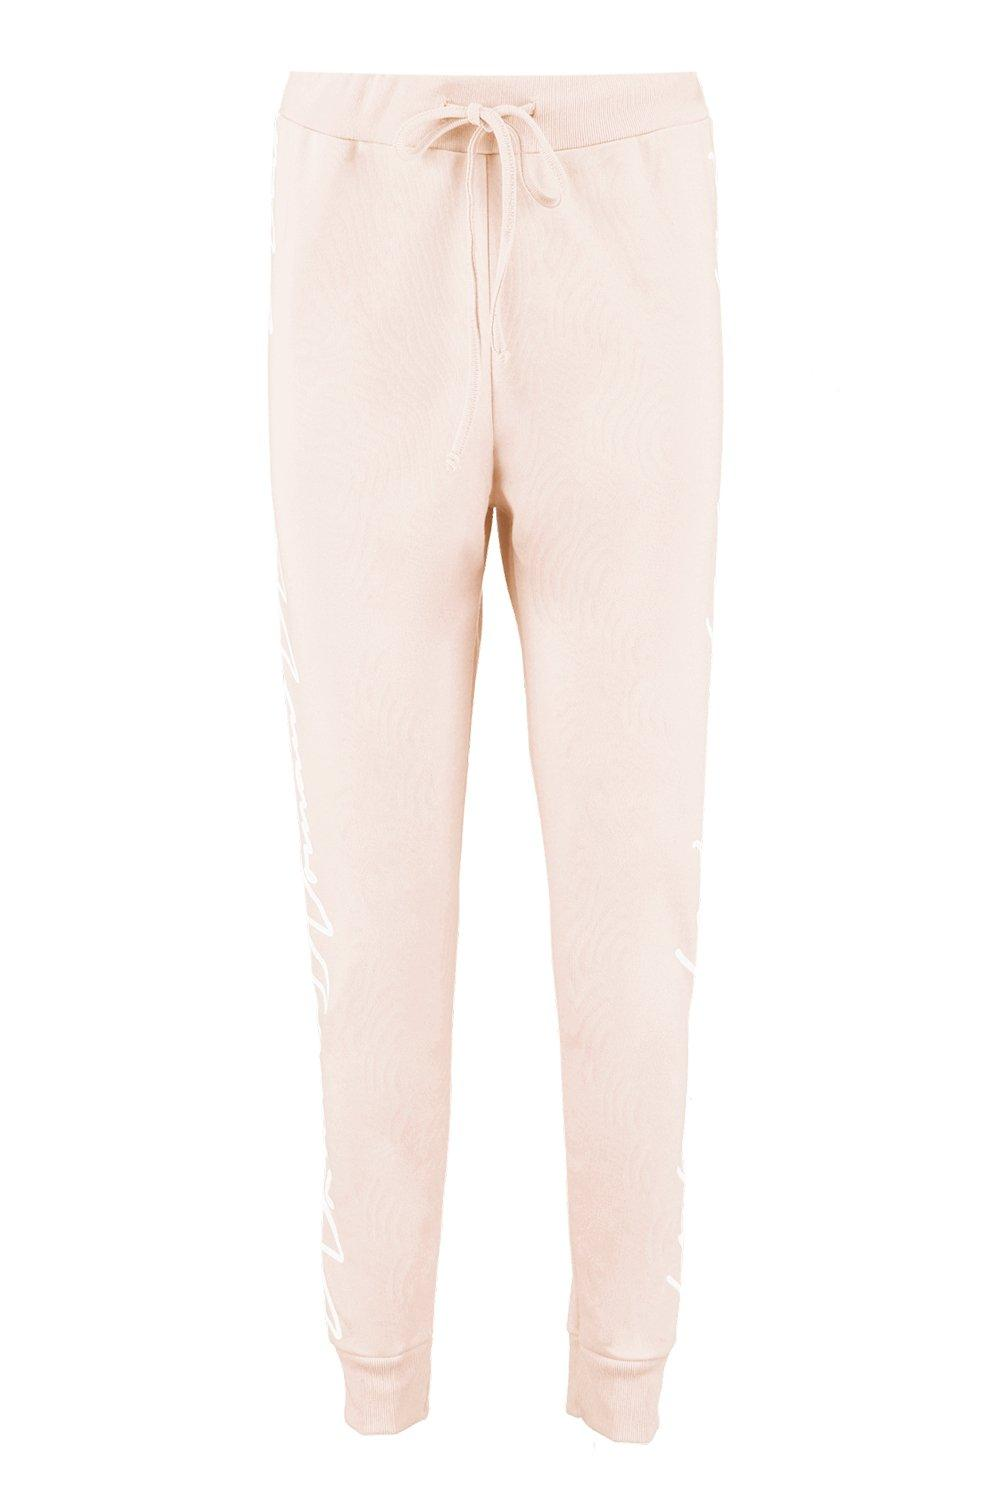 NEW-Boohoo-Womens-Woman-Slogan-Side-Detail-Jogger-in-Polyester